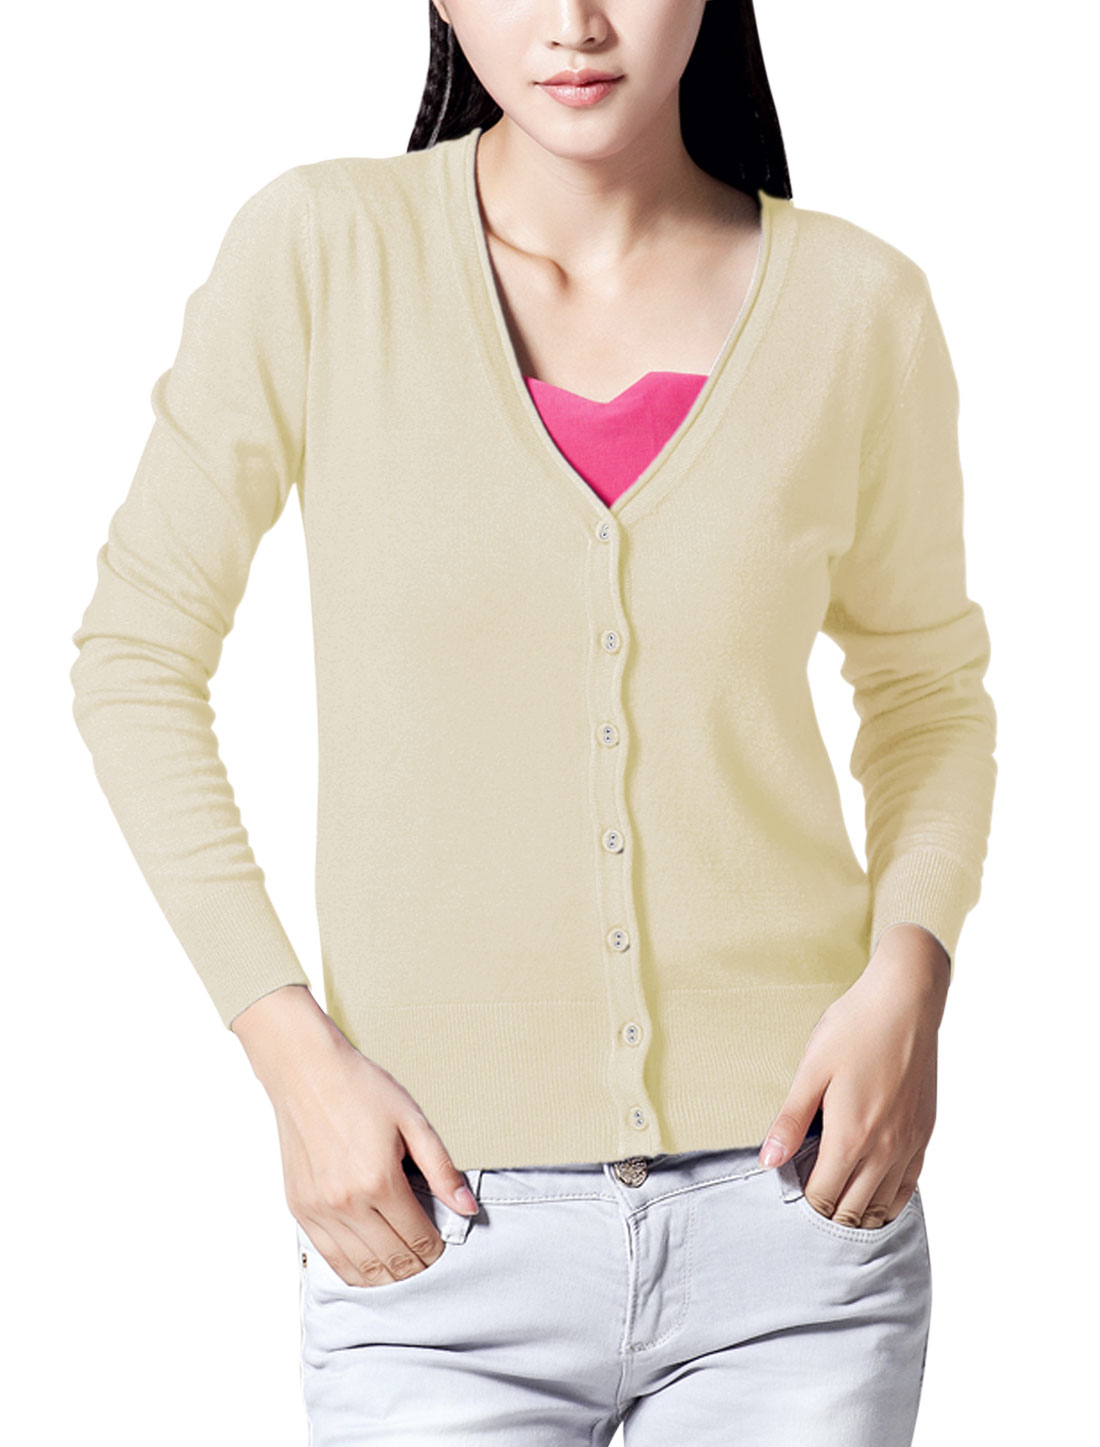 Lady Long Raglan Sleeve Stretchy Knit Cardigan Beige M